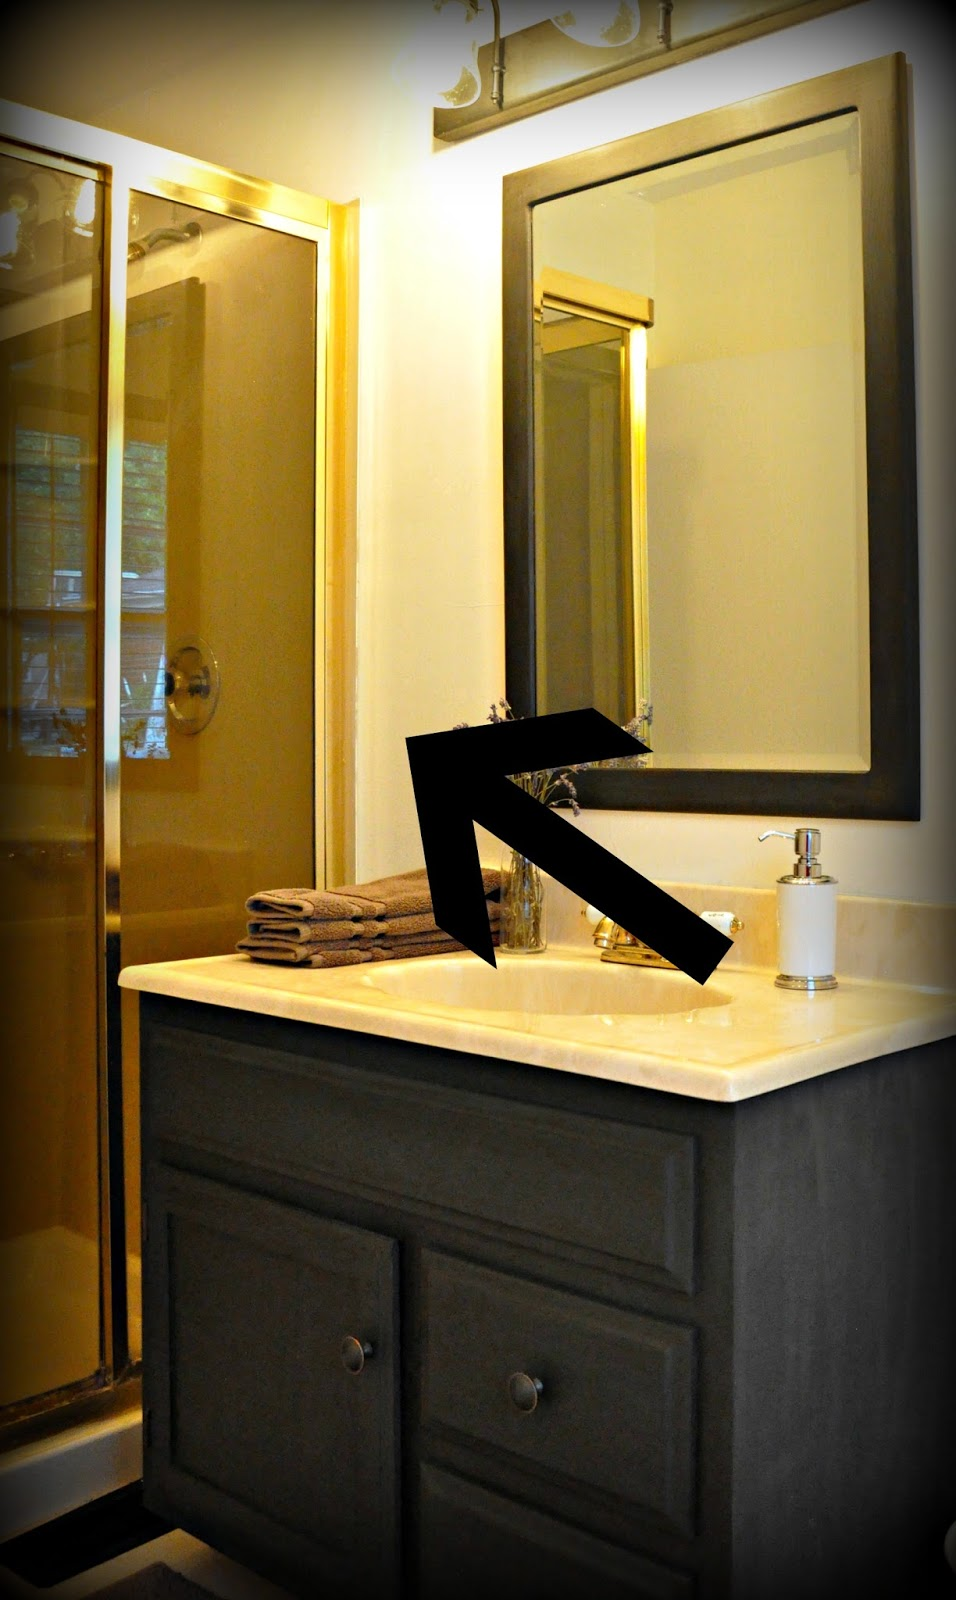 Bathroom Fixtures Gold serendipity refined blog: how to update oak and brass bathroom